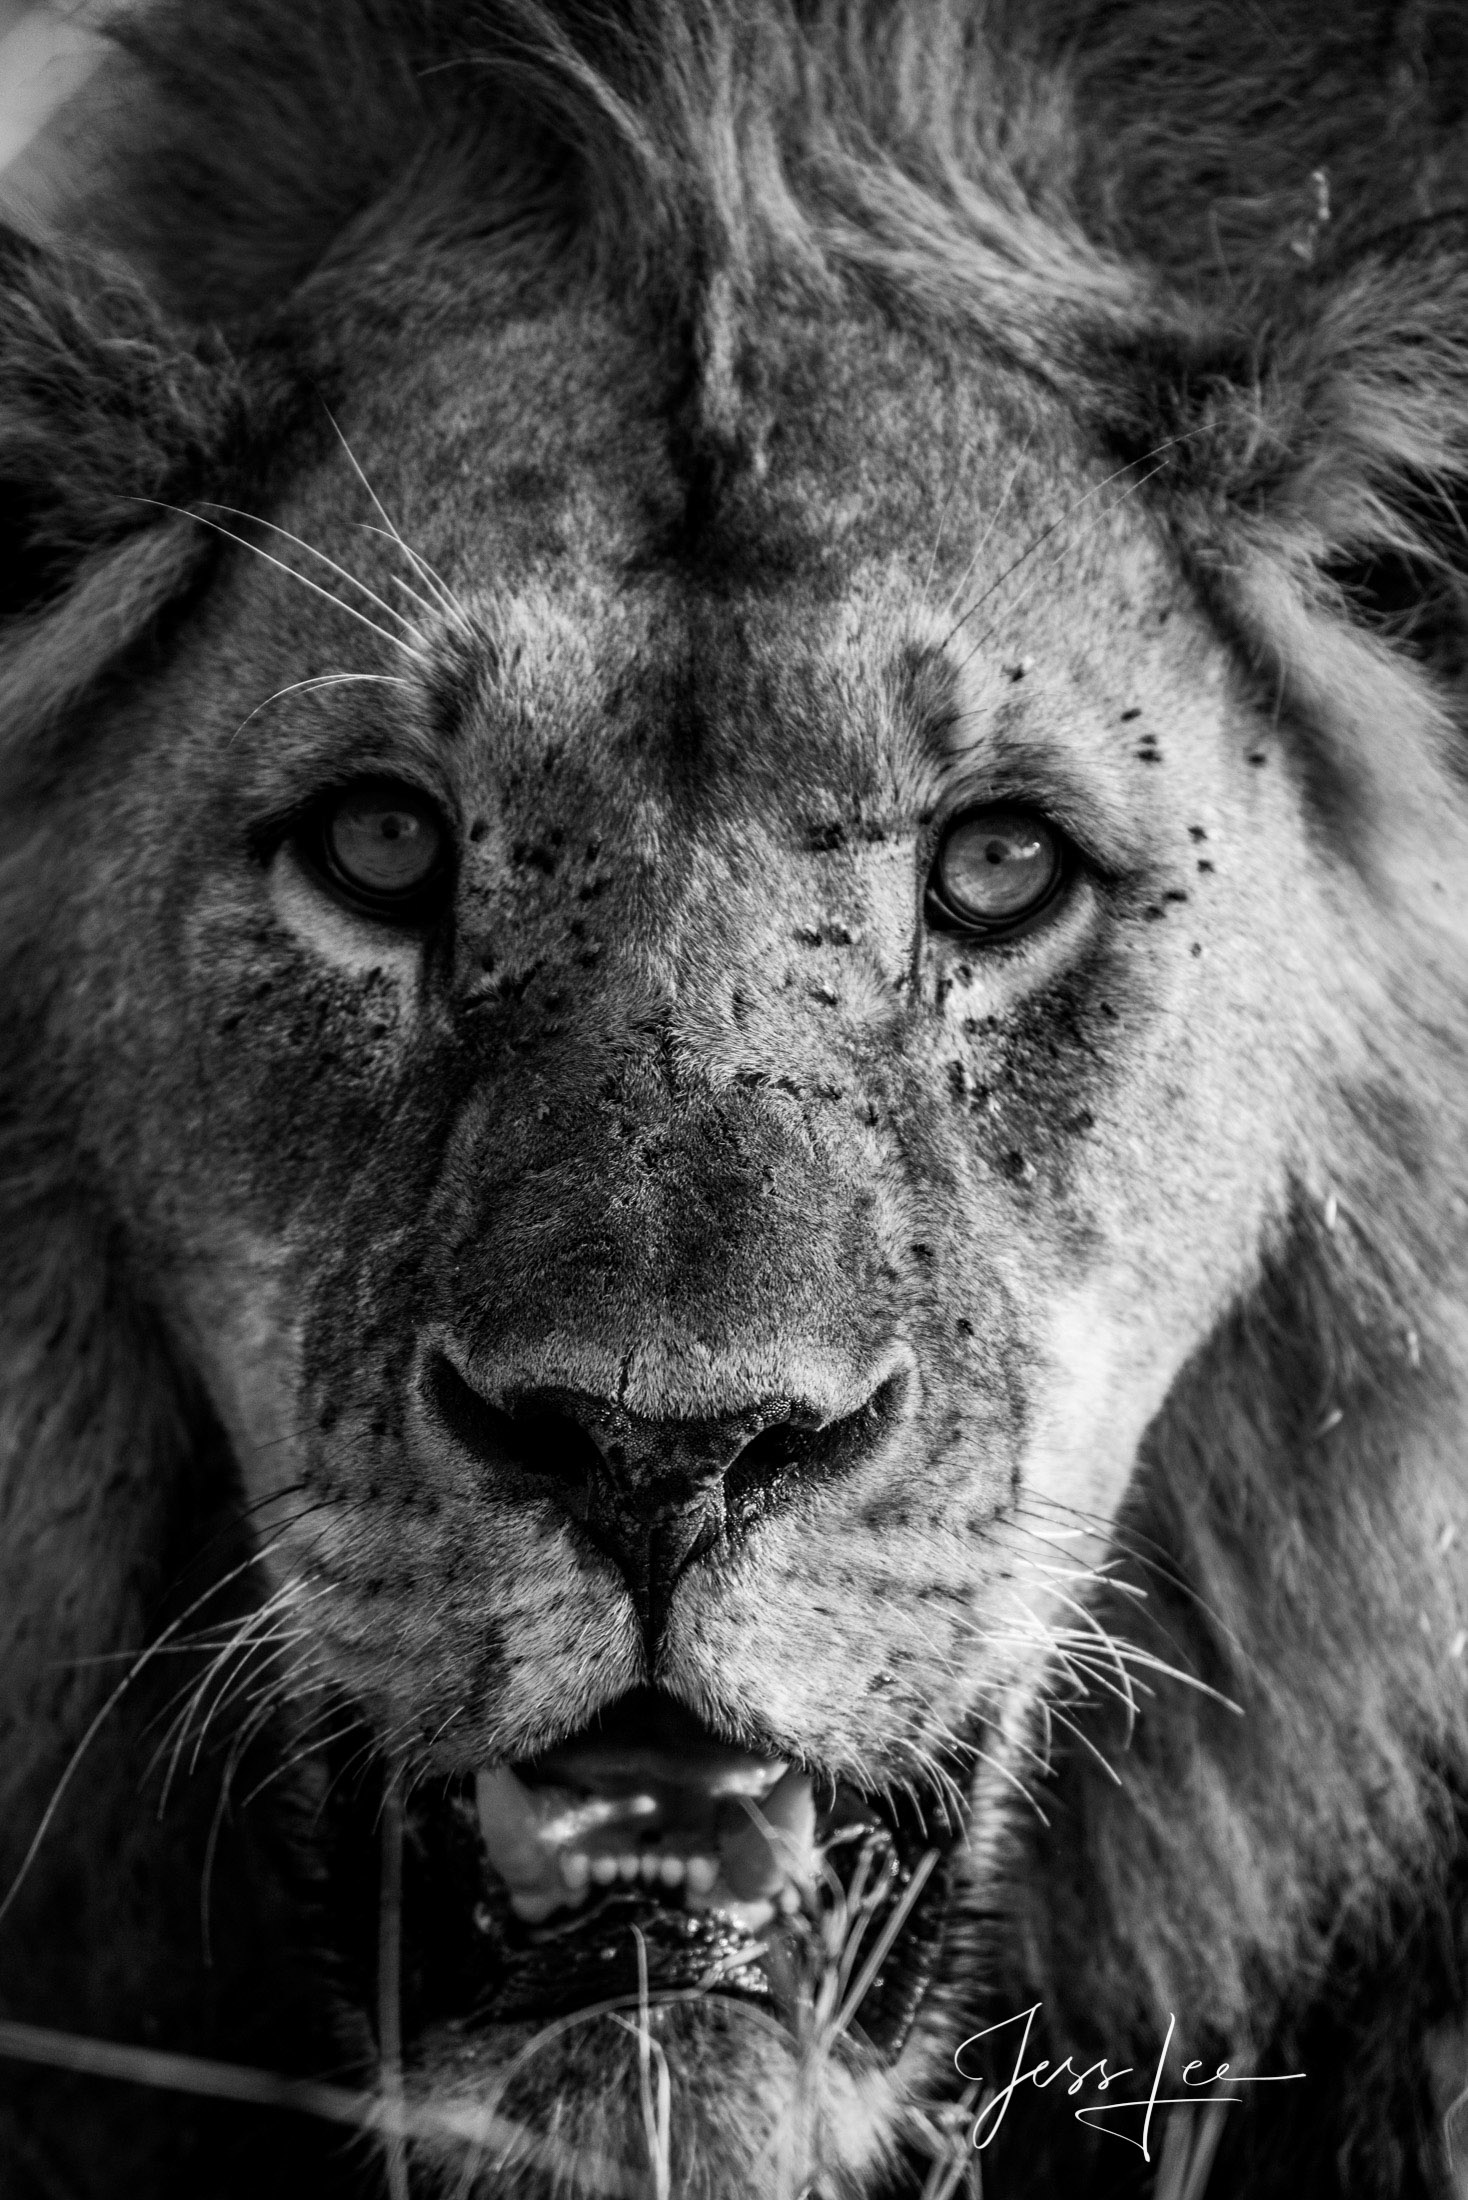 Black and White photo of Wild Male African Lion close-up and personal.